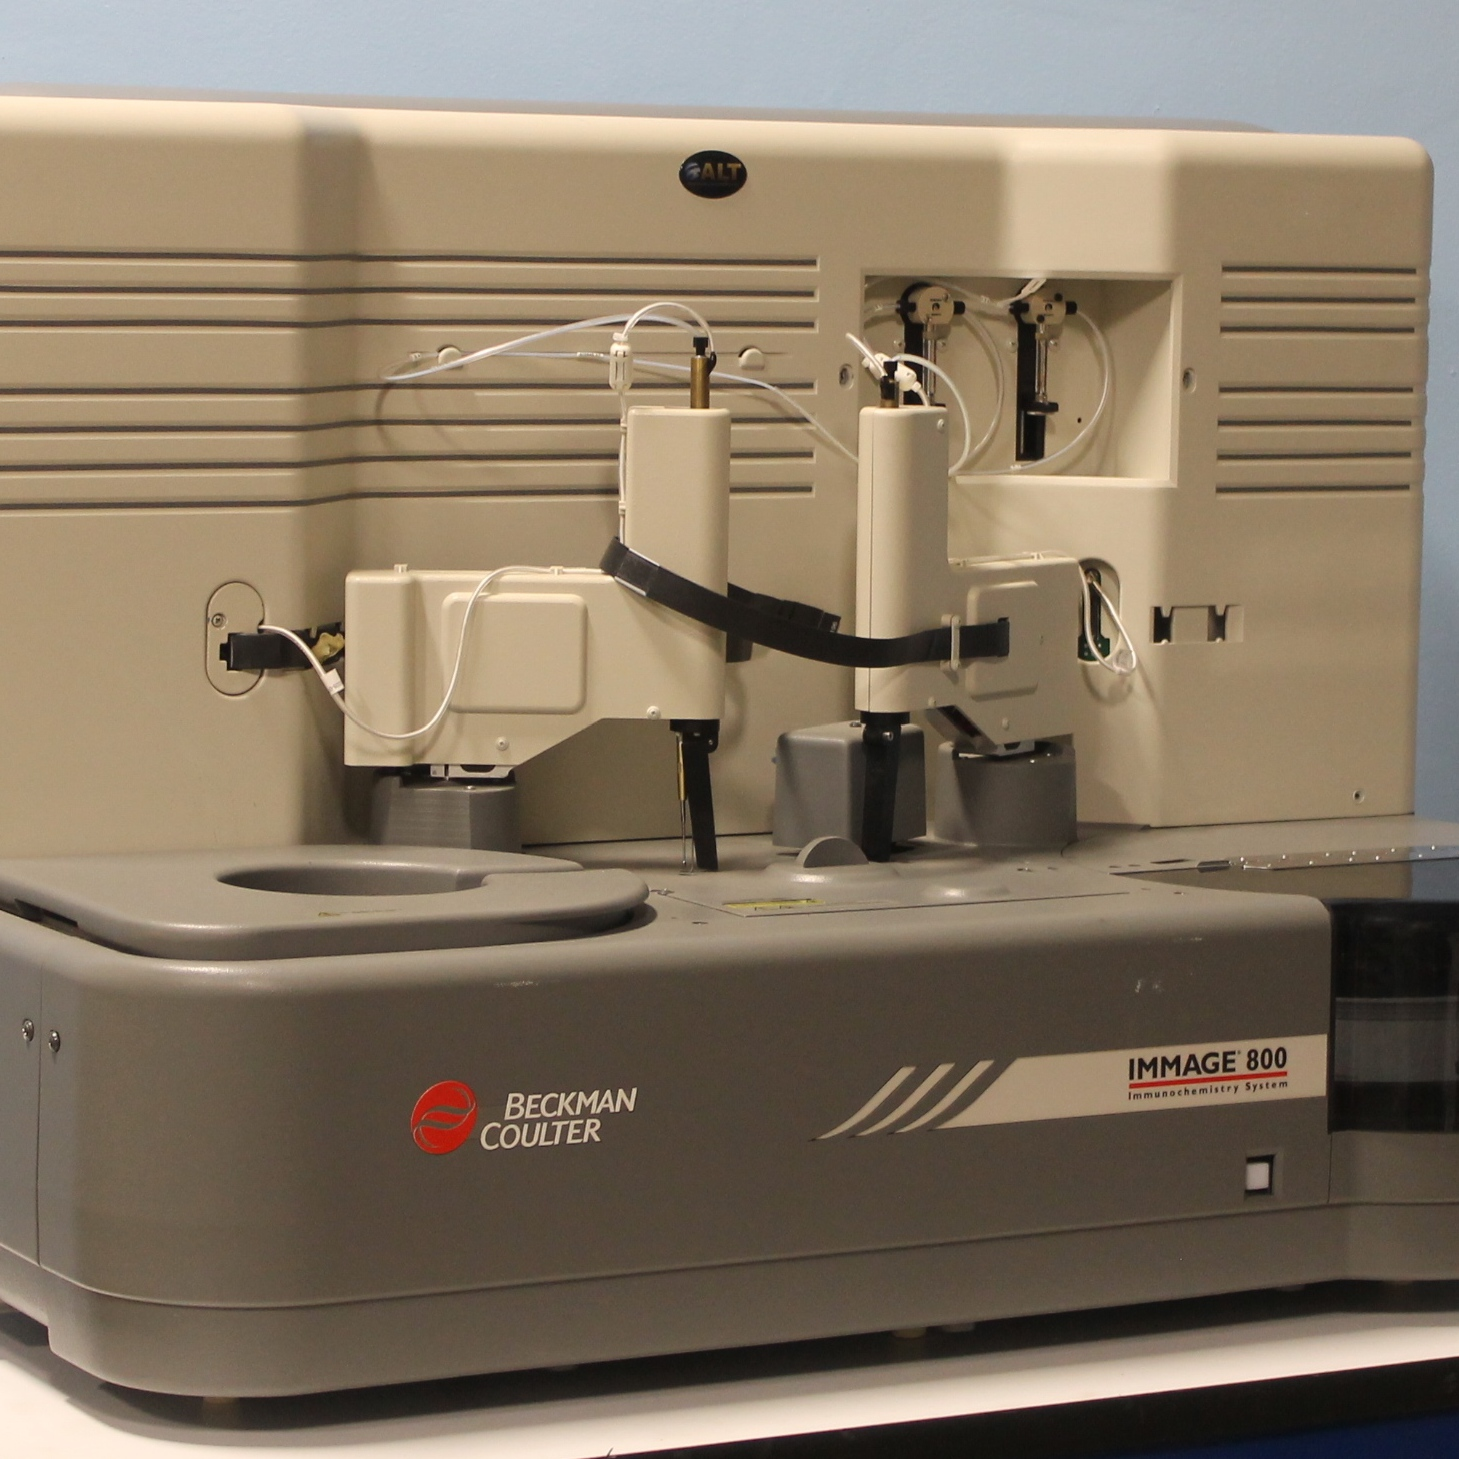 Beckman Coulter Immage 800 Immunochemistry System Image